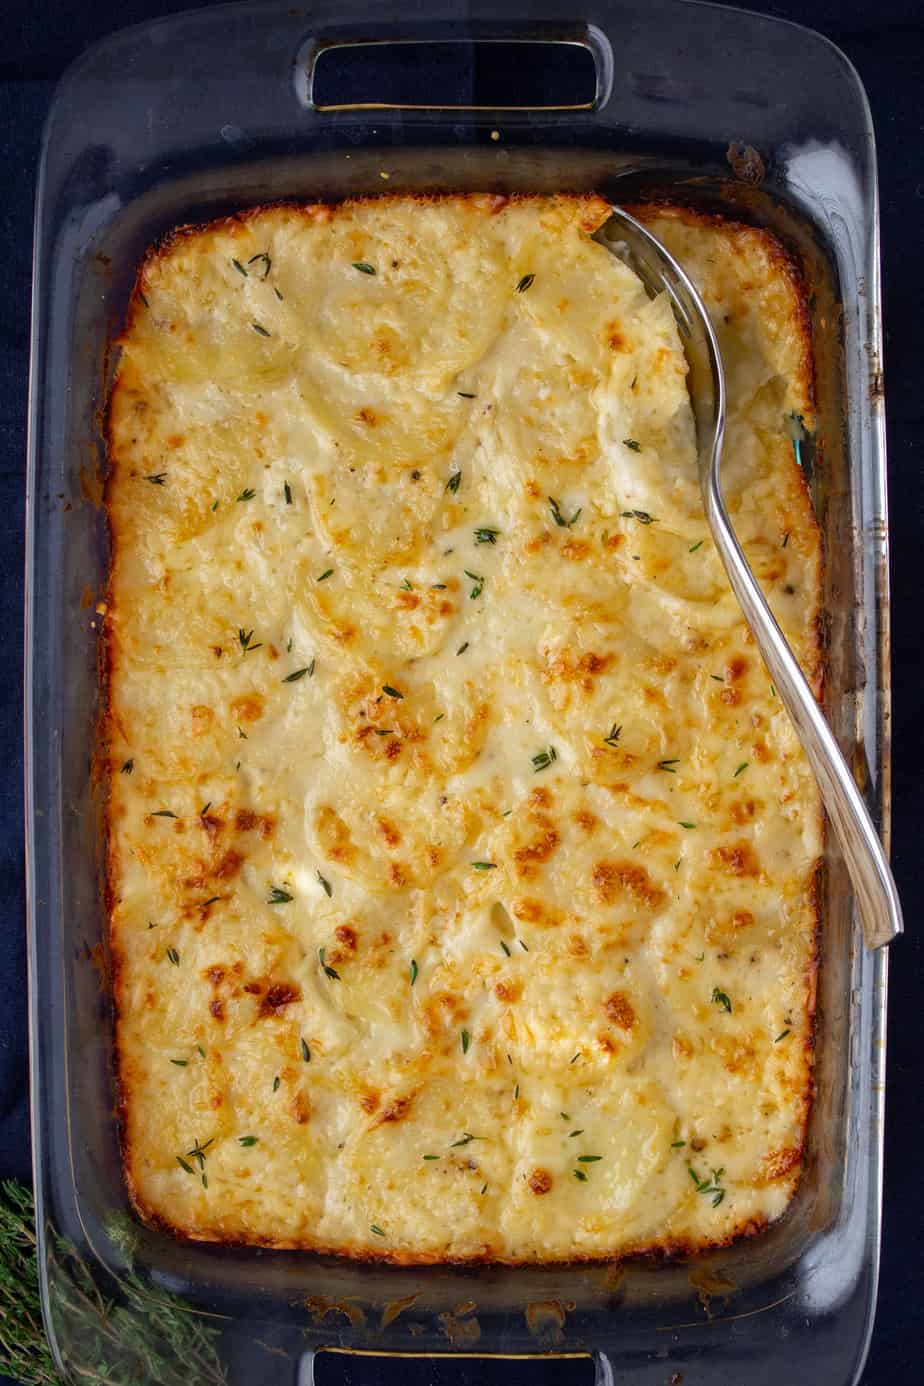 au gratin potatoes in a casserole dish on a dark background